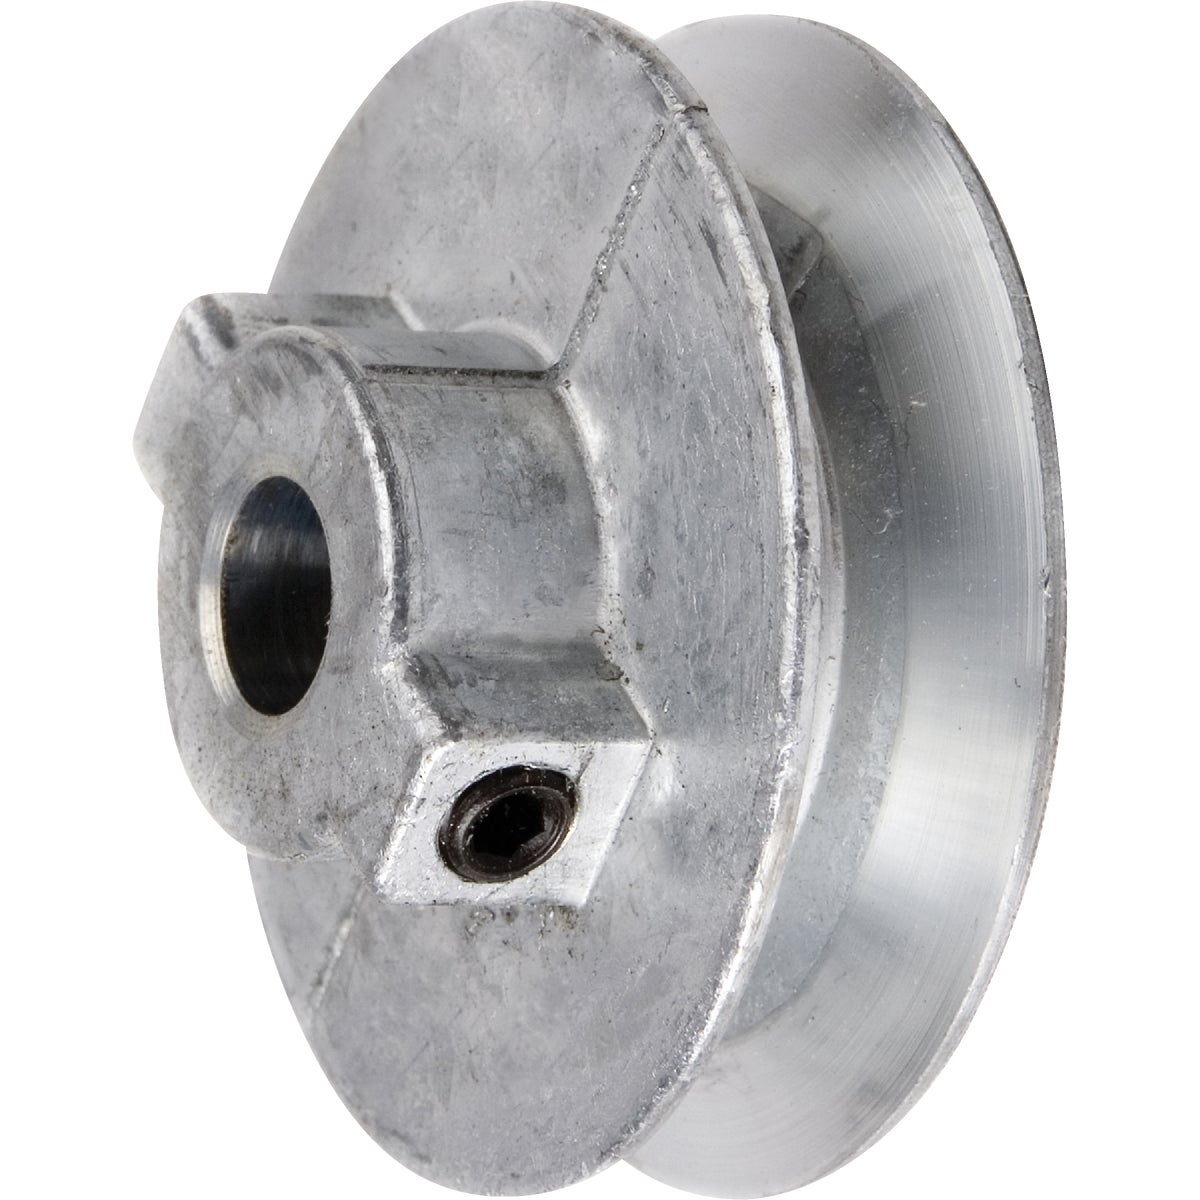 3-1/4X5/8 PULLEY - 325A6 by Chicago Die Casting